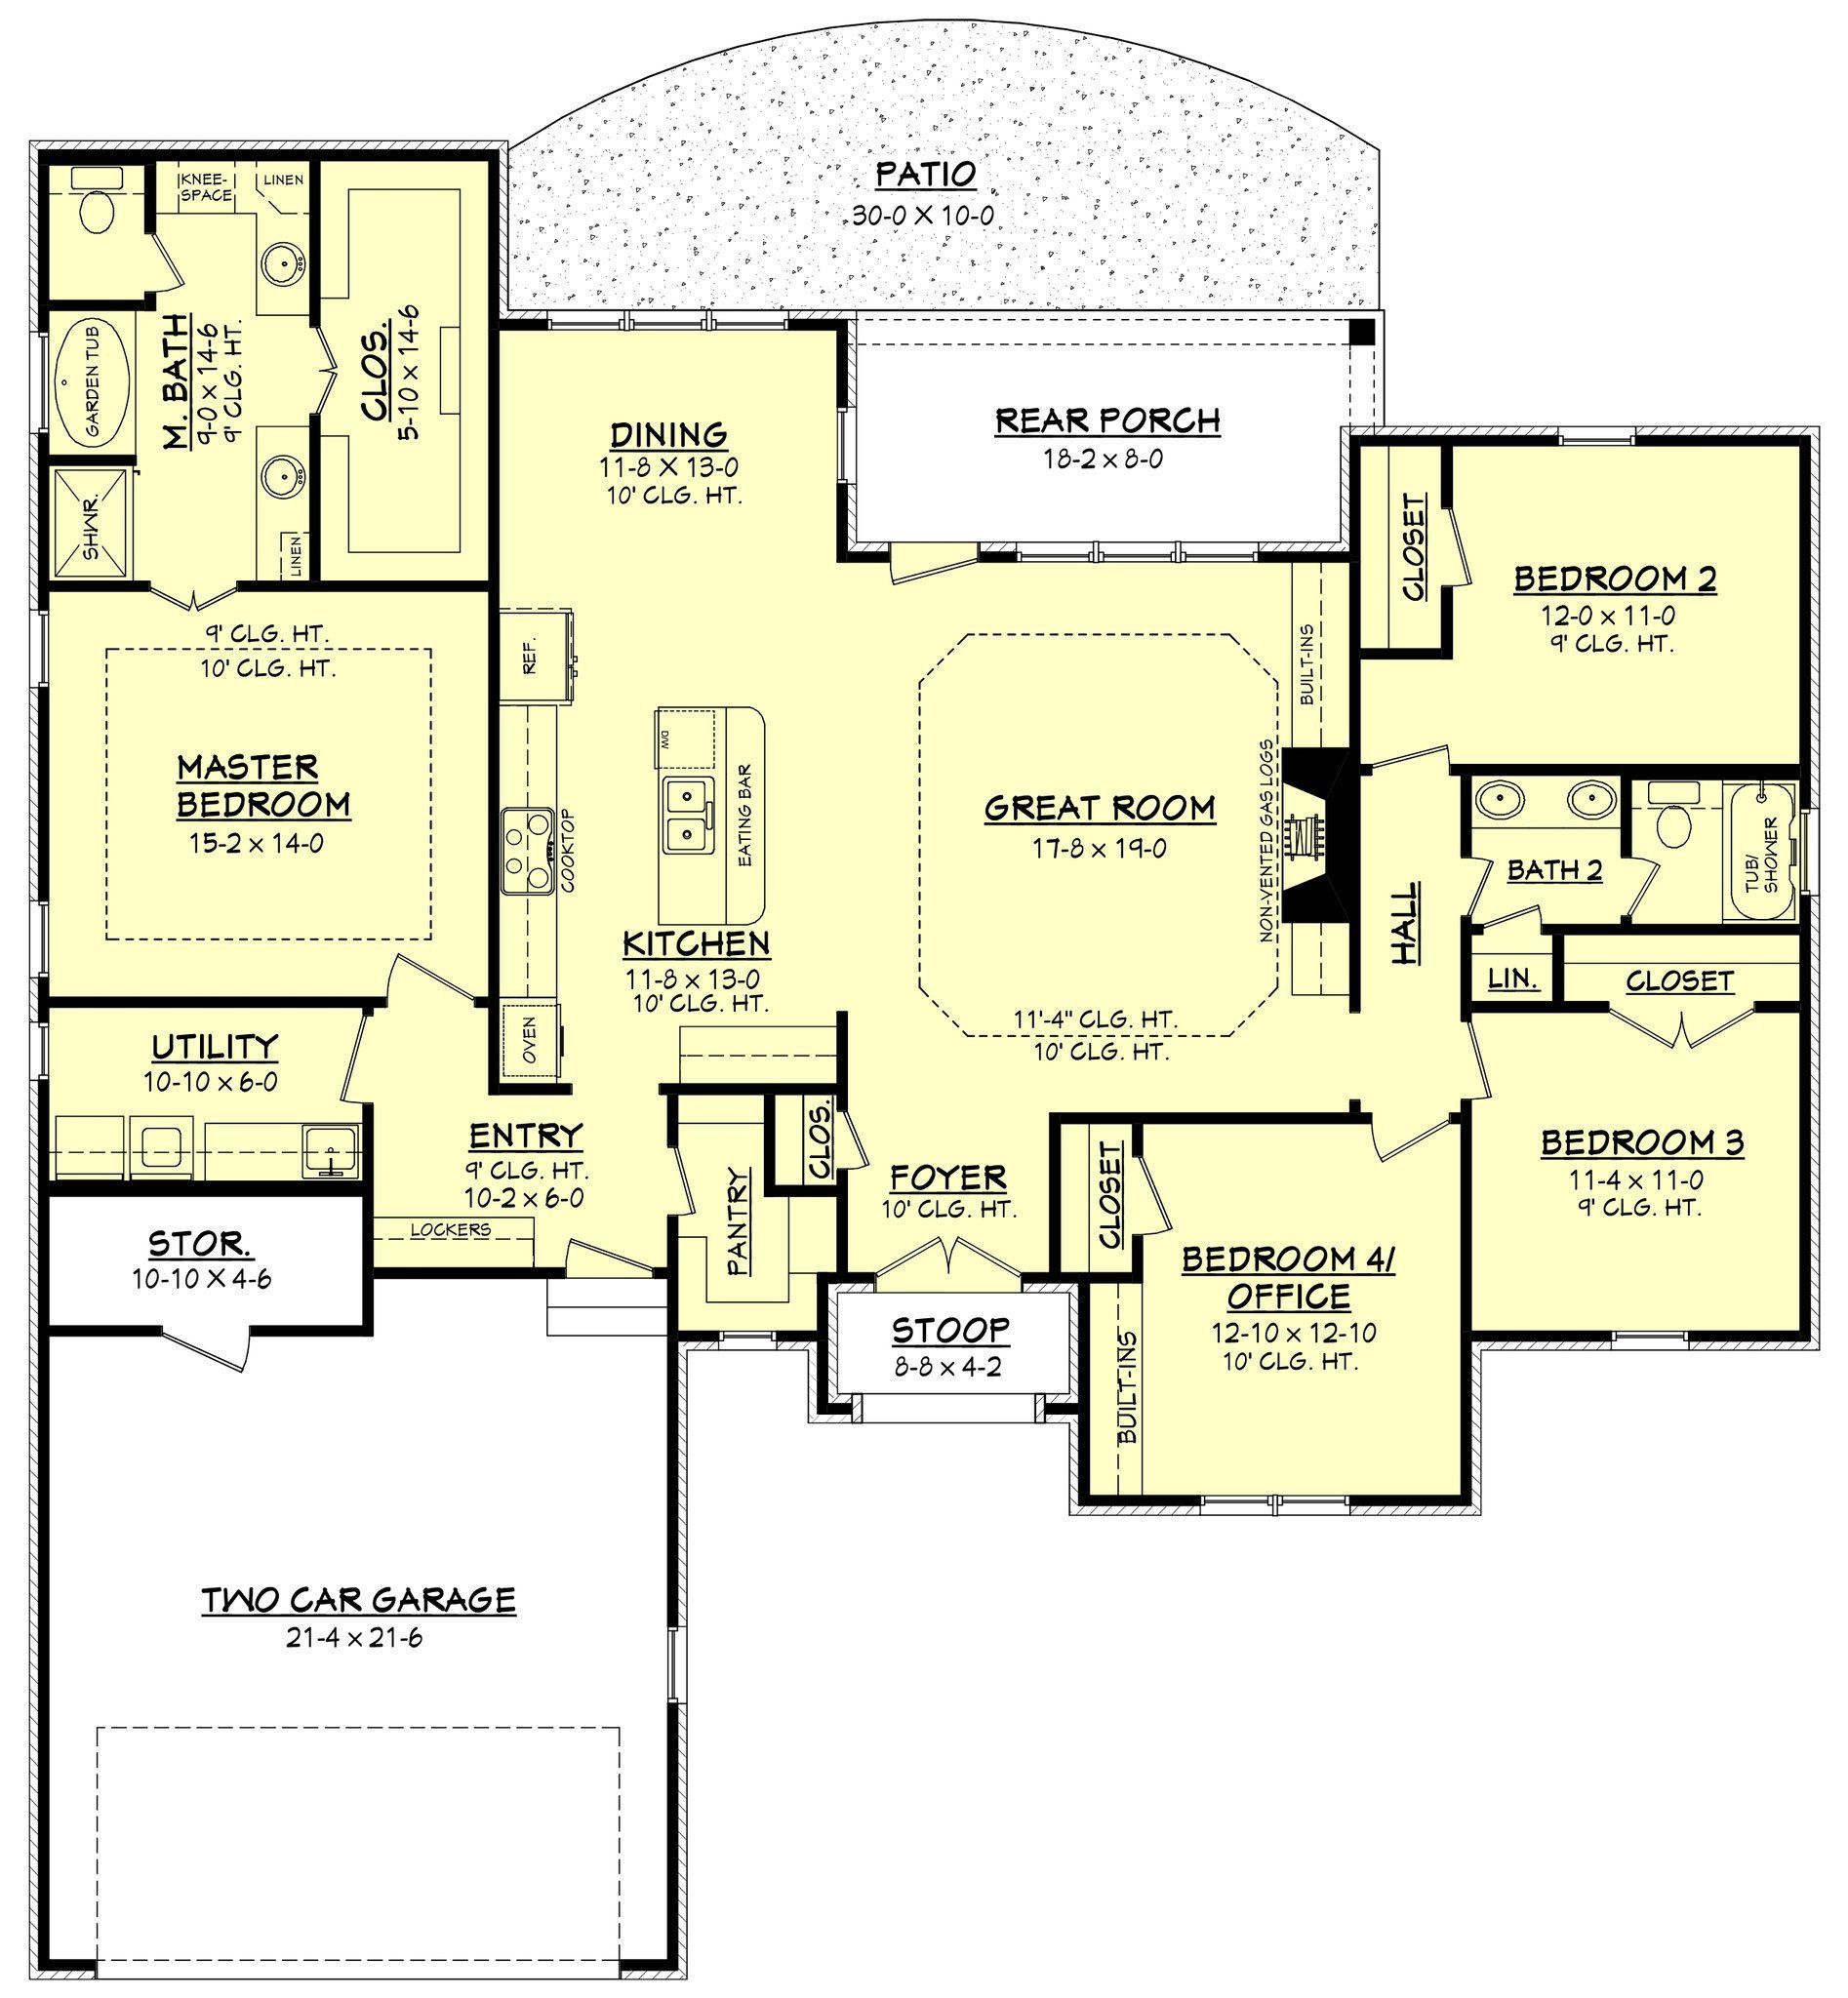 Get The House Plan You Want To Build The Home Of Your Dreams The Clear Creek Ii House Features A Ranch Style House Plans New House Plans 4 Bedroom House Plans